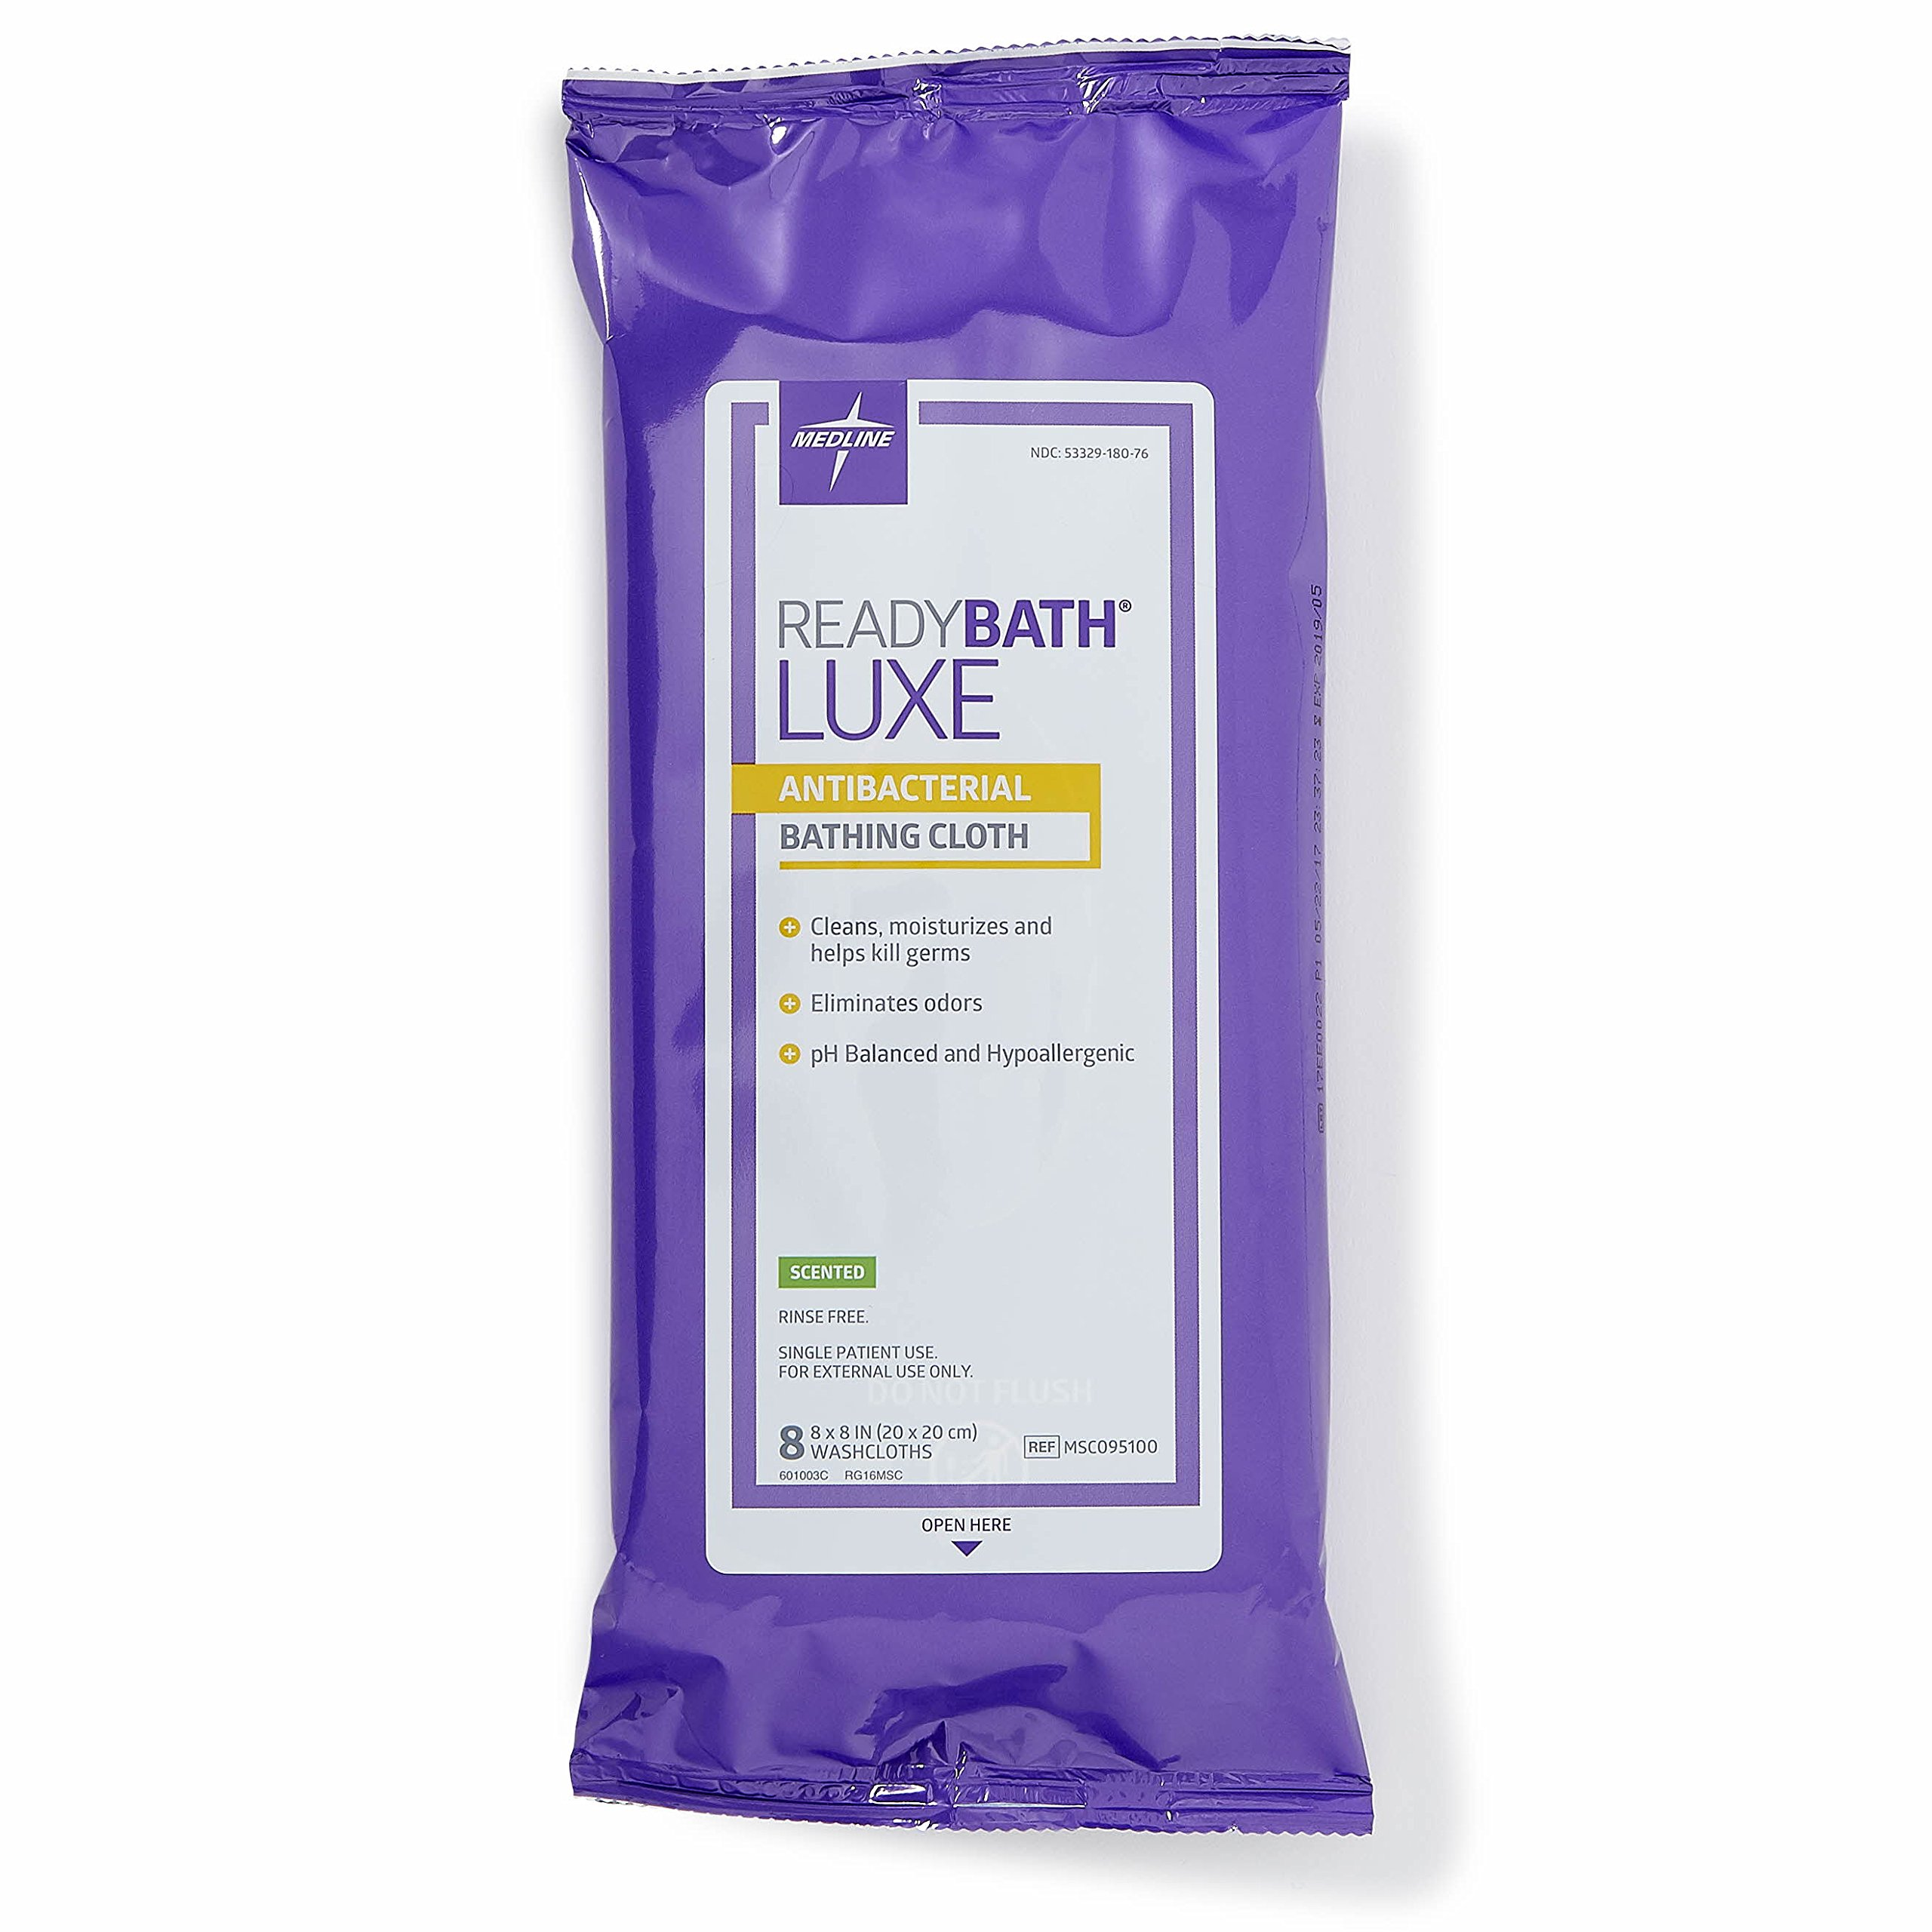 Medline ReadyBath LUXE Antibacterial Body Cleansing Cloth Wipes, Scented, Extra Thick Wipes (8 Count Pack, 24 Packs) by Medline